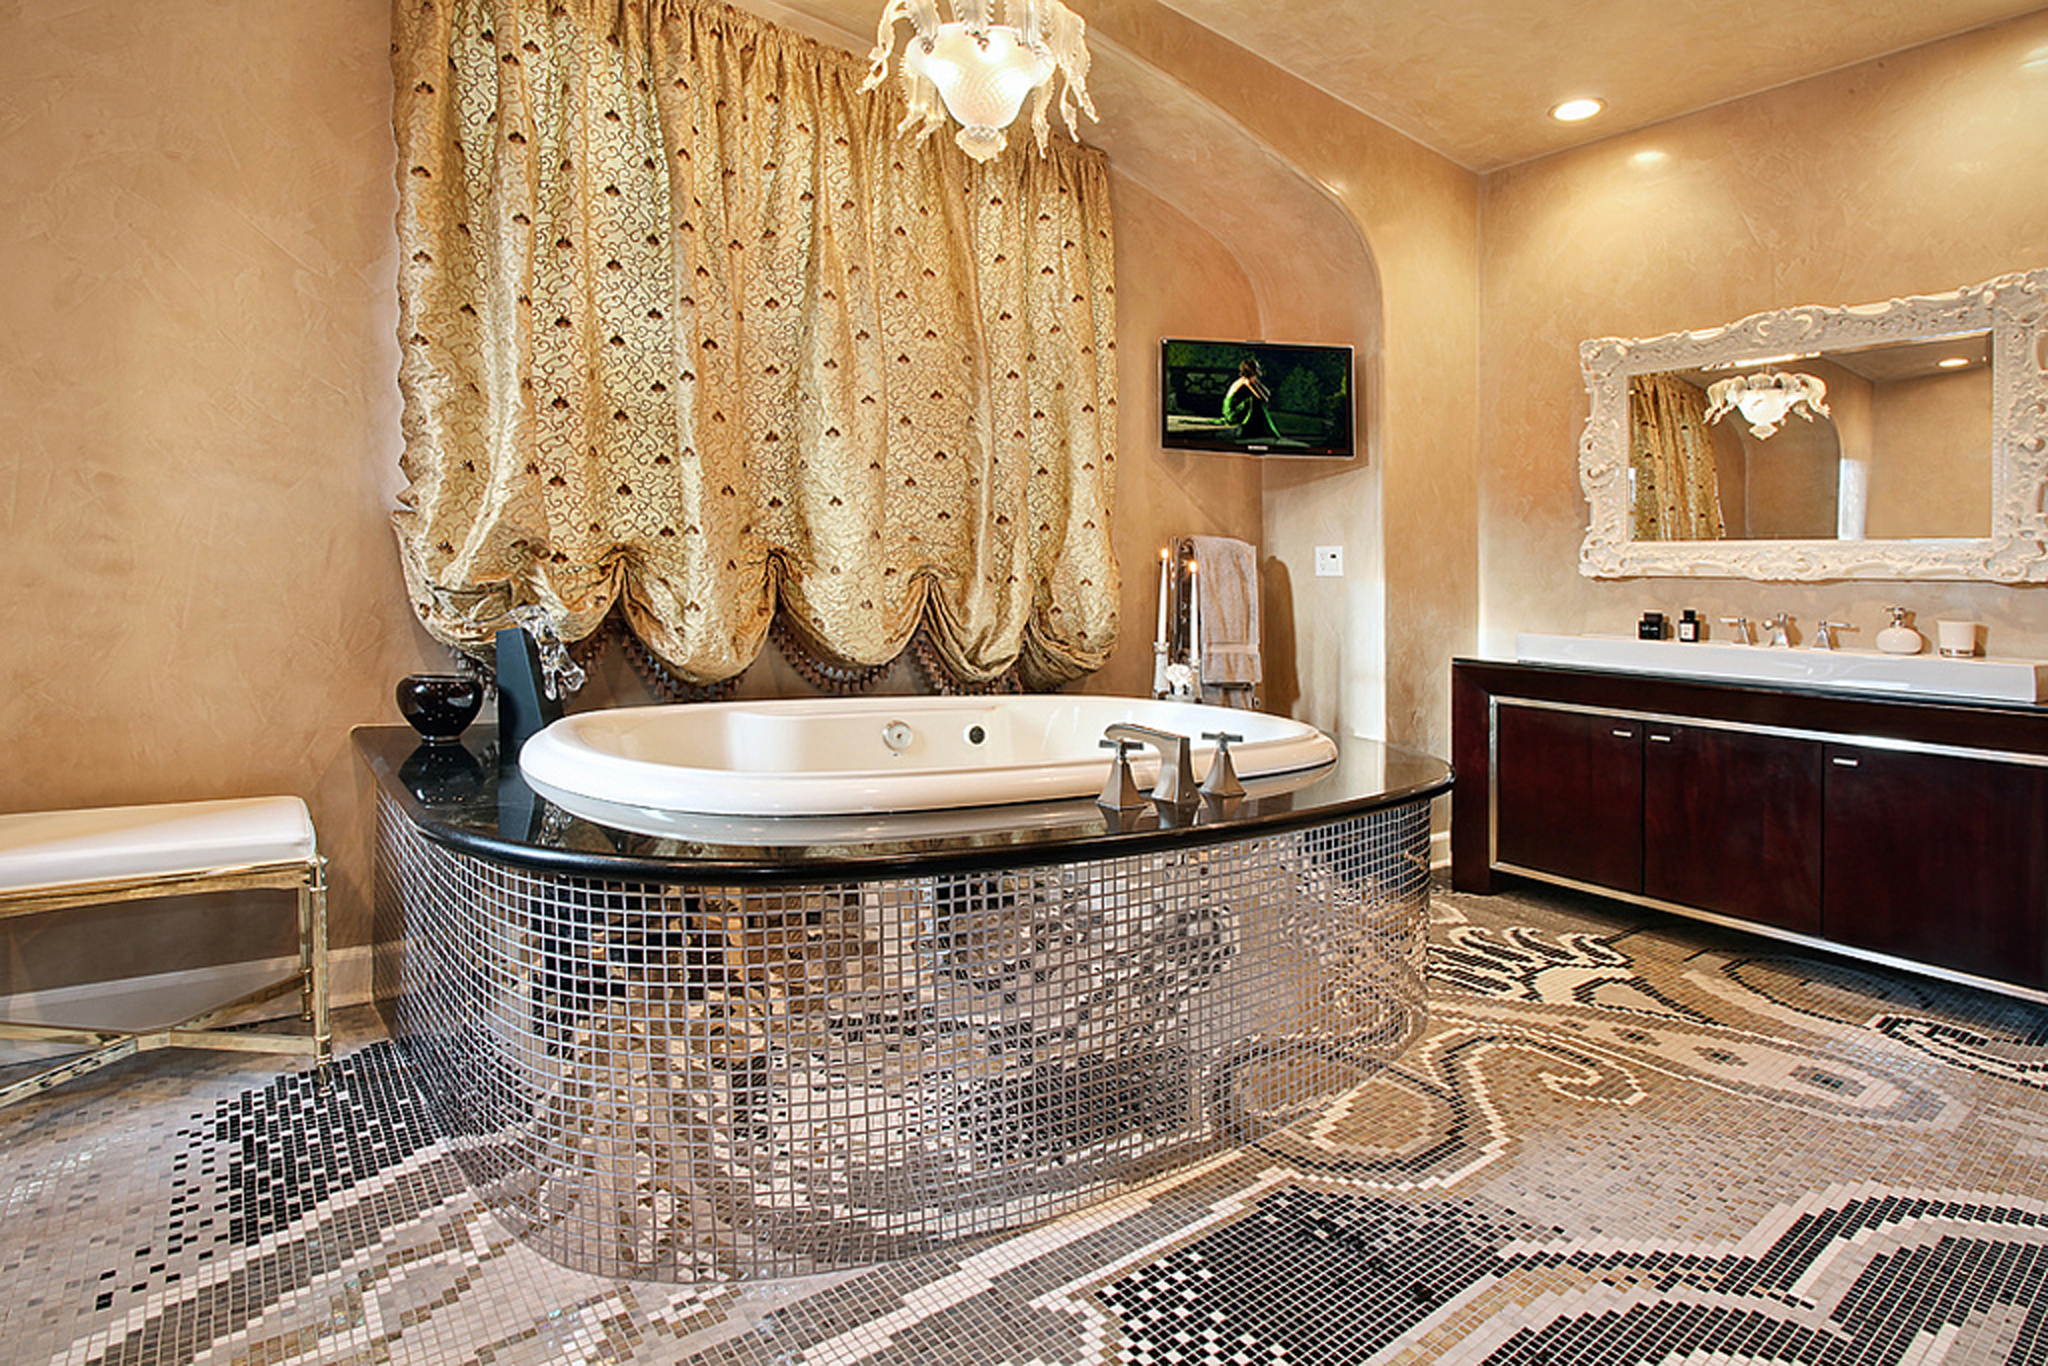 A masterful creator of luxury interiors rancho santa fe for Beautiful houses interior bathrooms